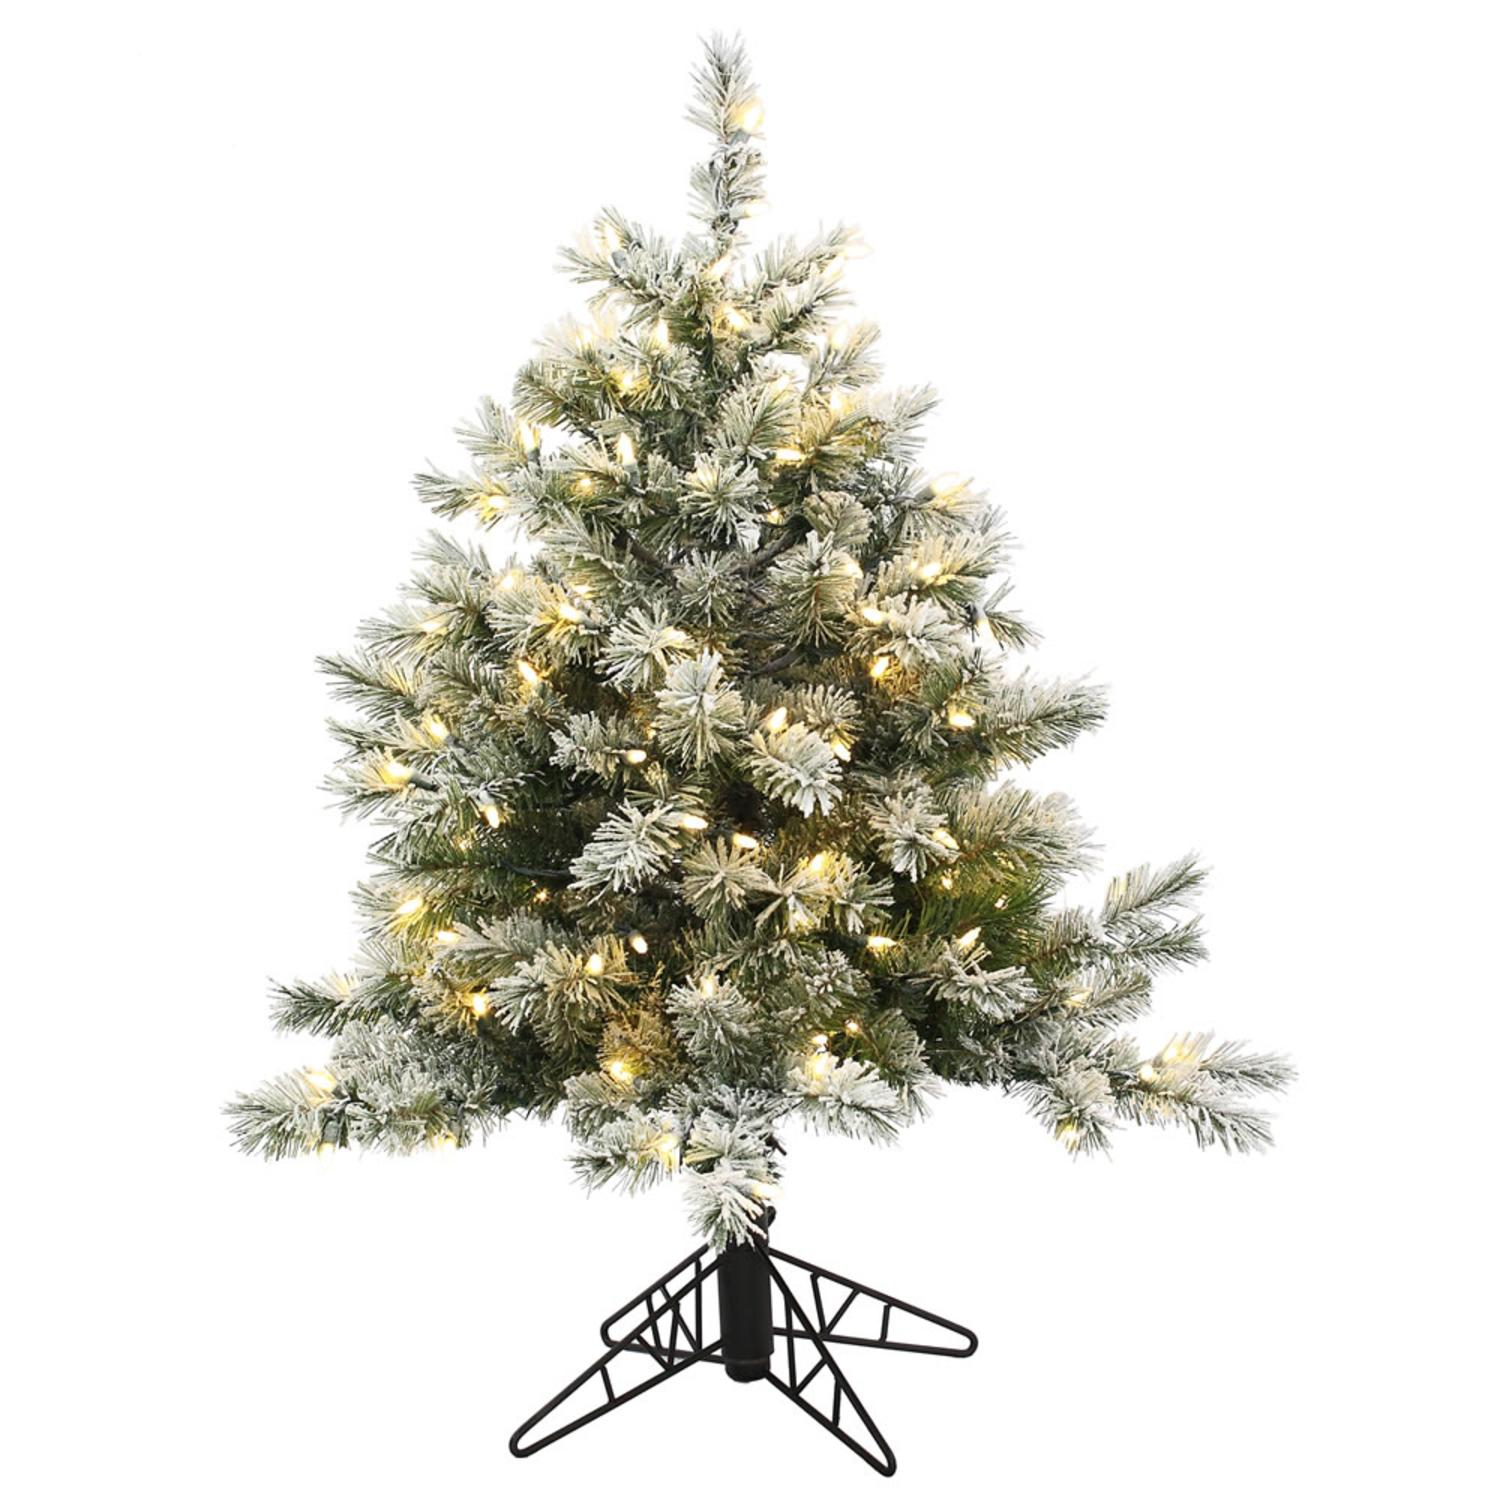 Crestwood small artificial christmas tree with plastic bronze pot - Crestwood Small Artificial Christmas Tree With Plastic Bronze Pot